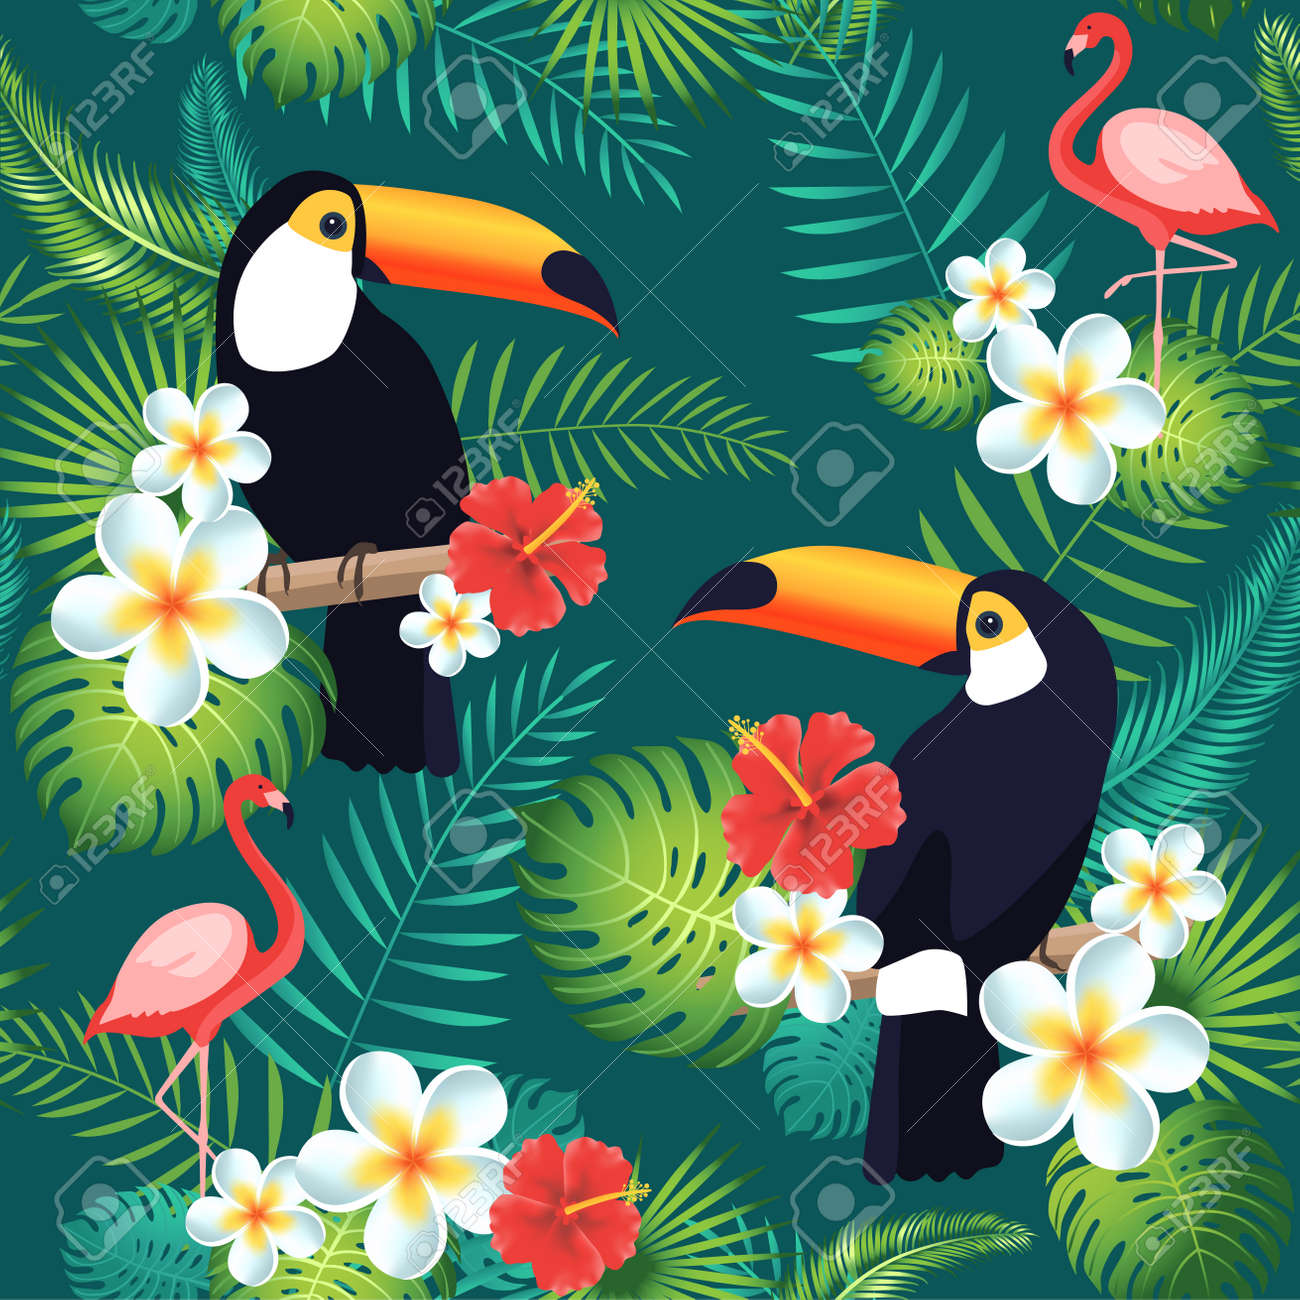 Tropical seamless pattern with toucans, flamingos, exotic leaves and flowers. Vector illustration - 83492959